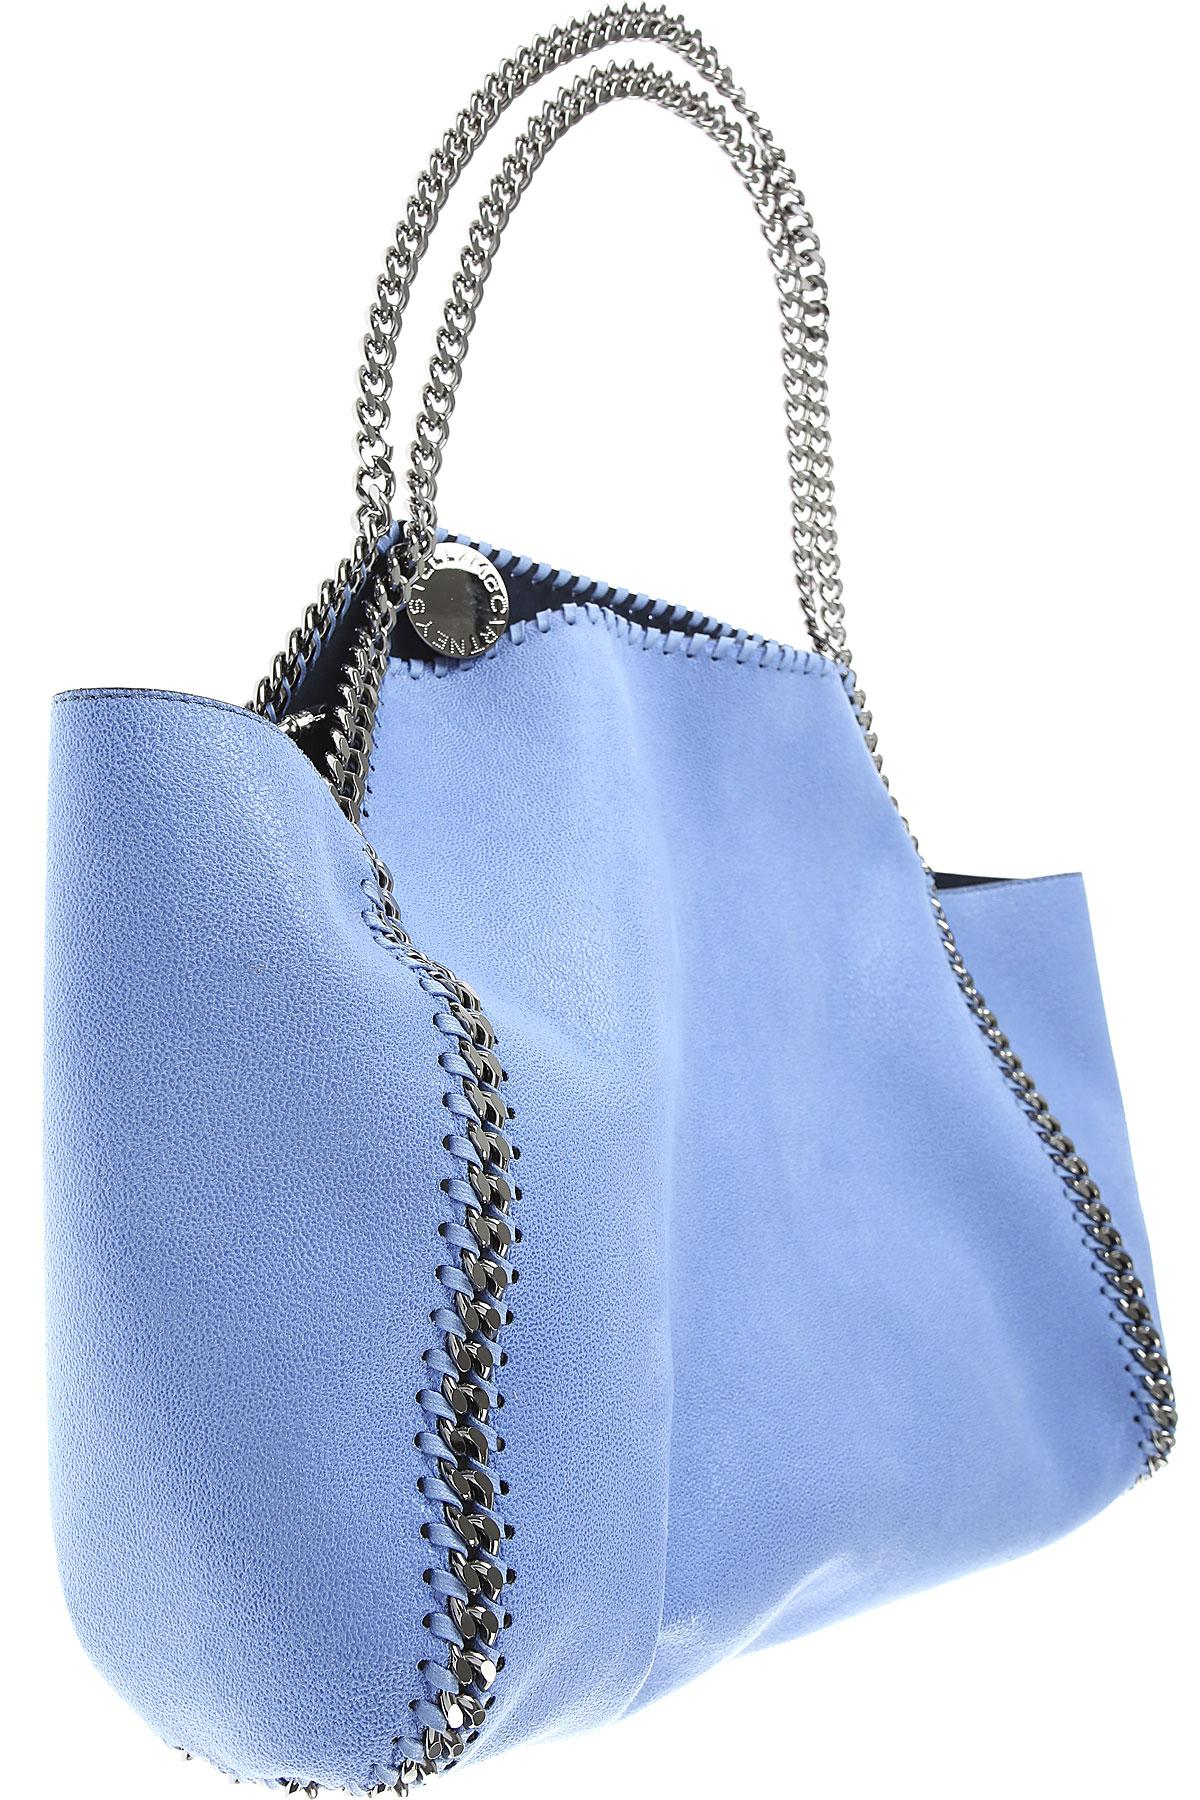 Stella McCartney - Blue Tote Bag - Lyst. View fullscreen 0942f3075db80